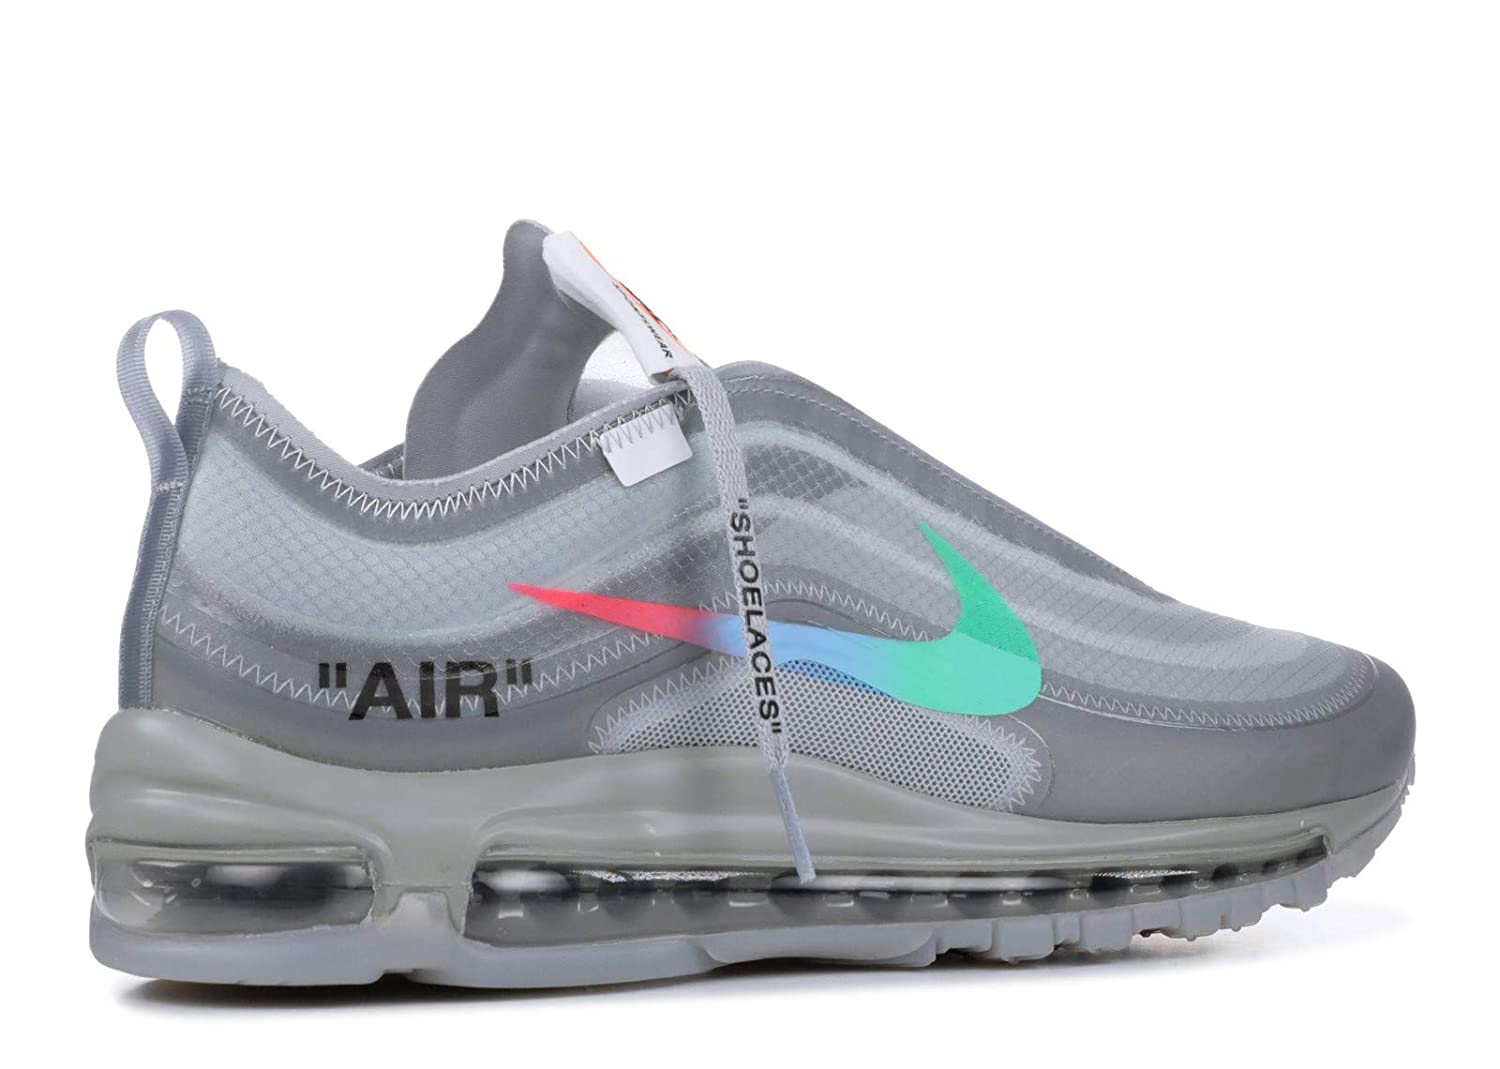 low priced 573fd f32a9 Amazon.com   Nike The 10 AIR MAX 97 OG  Off White  - AJ4585-101   Shoes